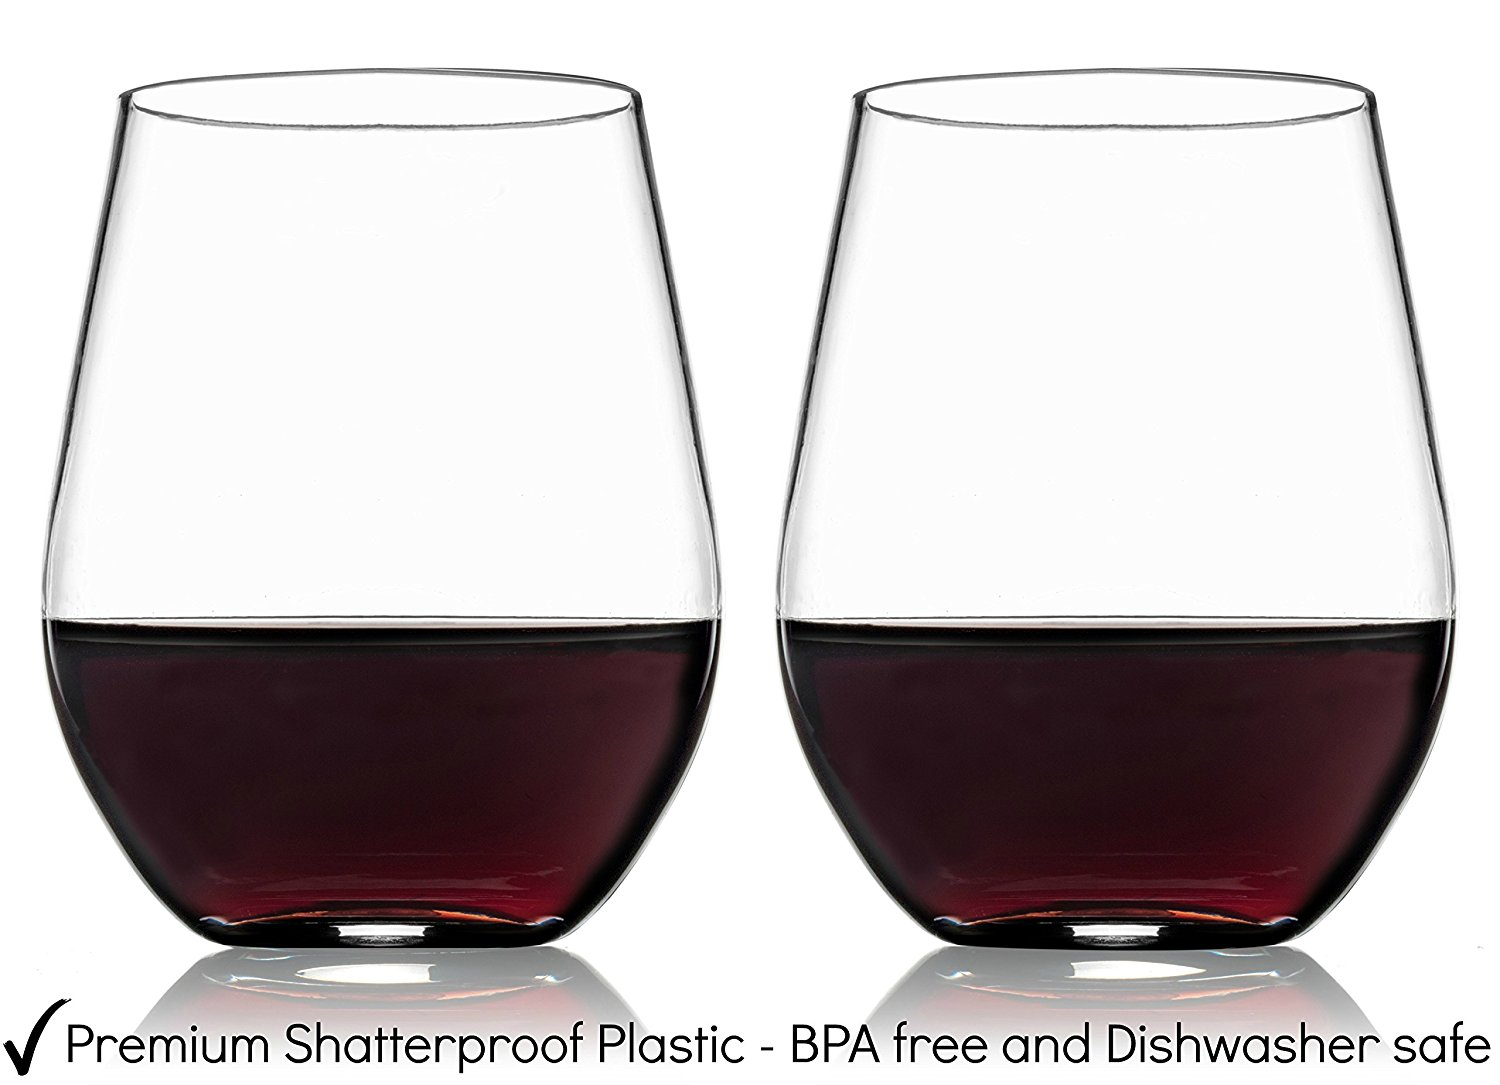 d4d579eaa1d KATYK Unbreakable BPA Free Clear Plastic Stemless Wine Glasses ...